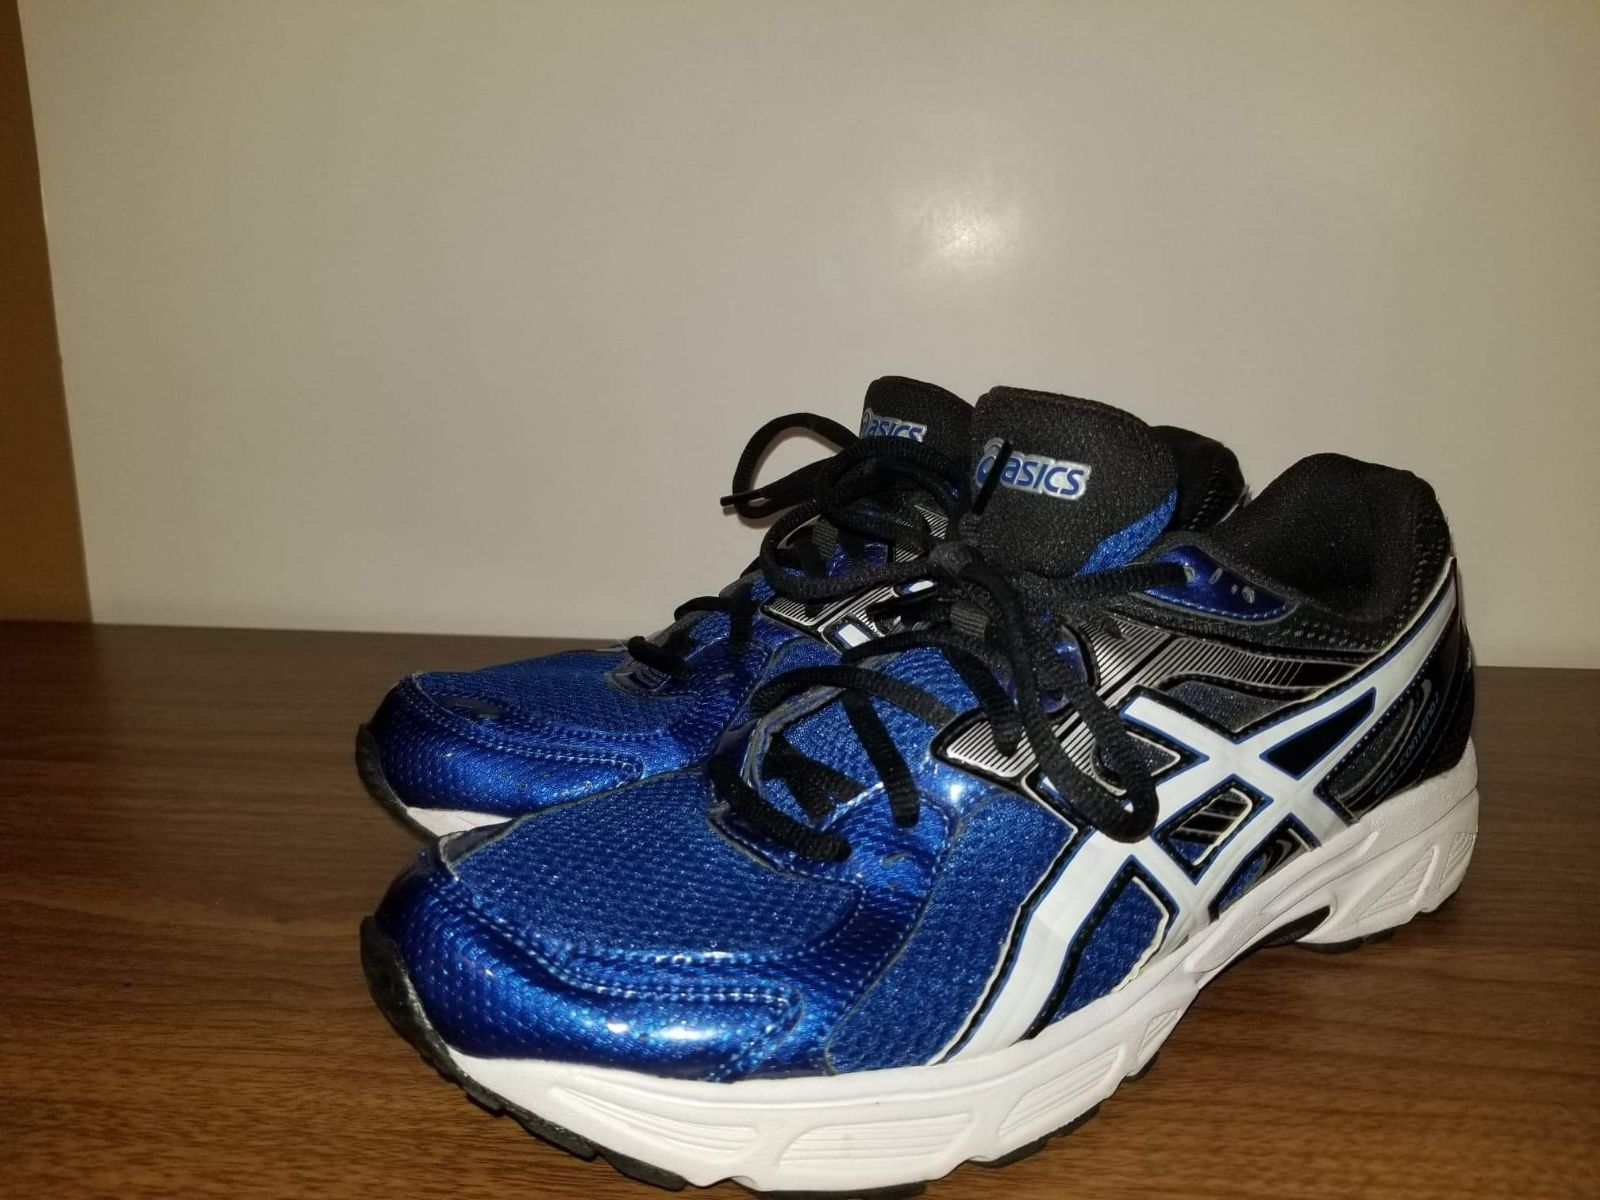 Asics Gel-Contend 5 Running Shoes  Size